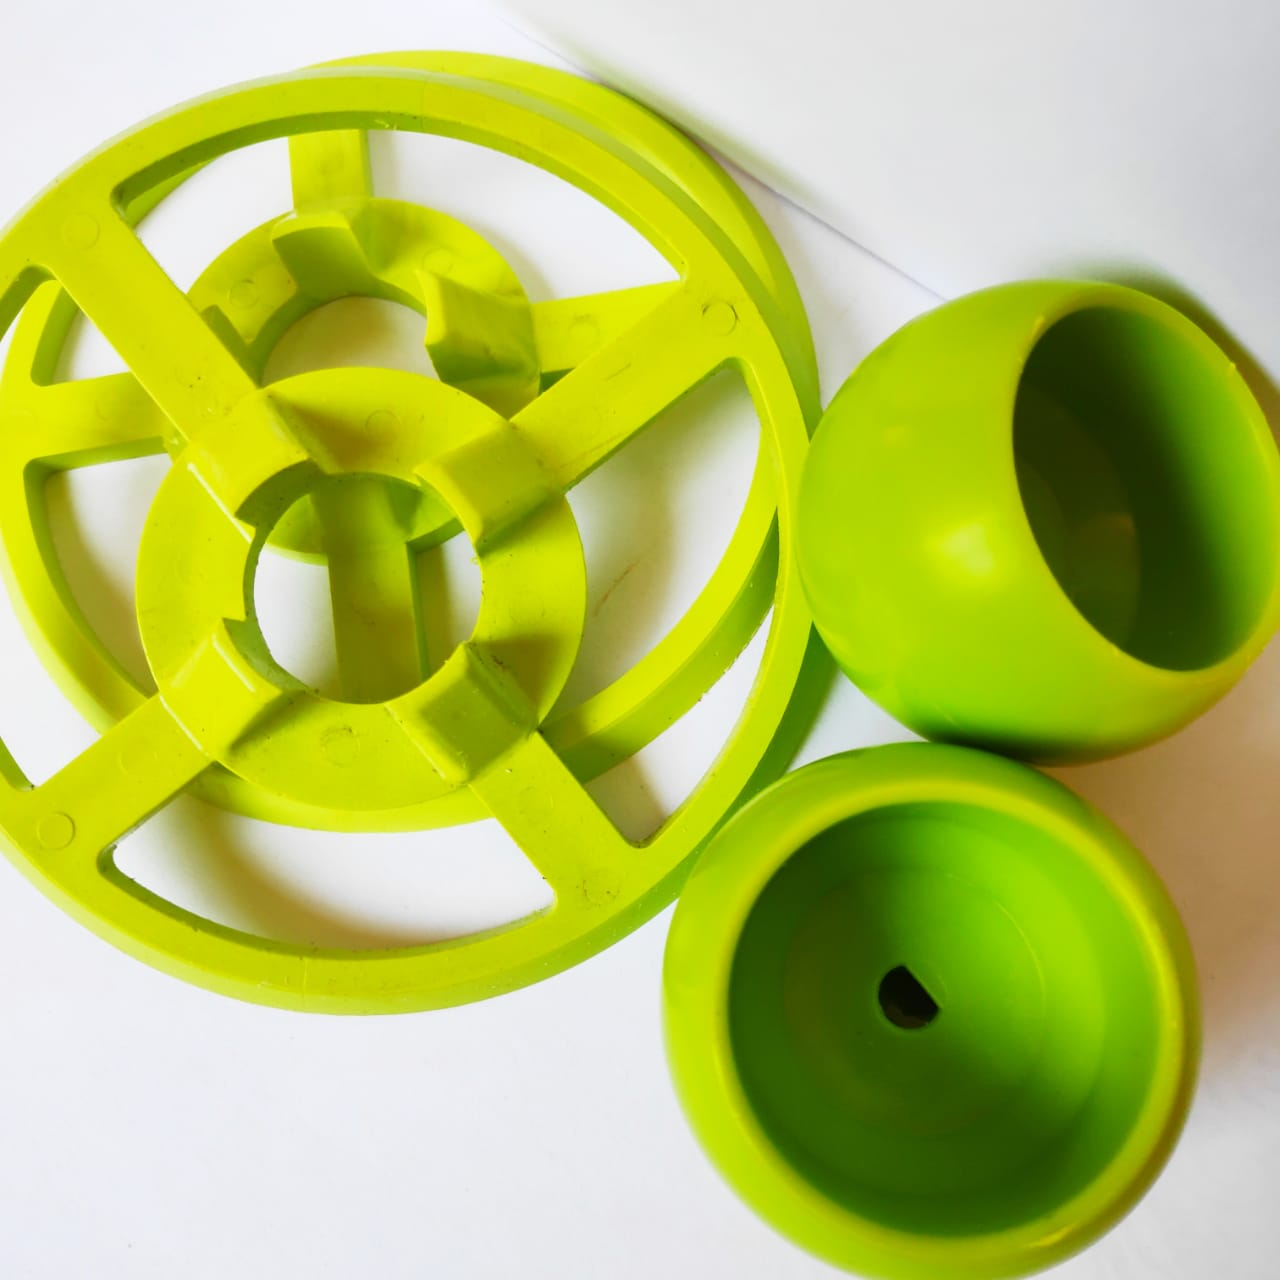 Injection Molded Plastic Parts